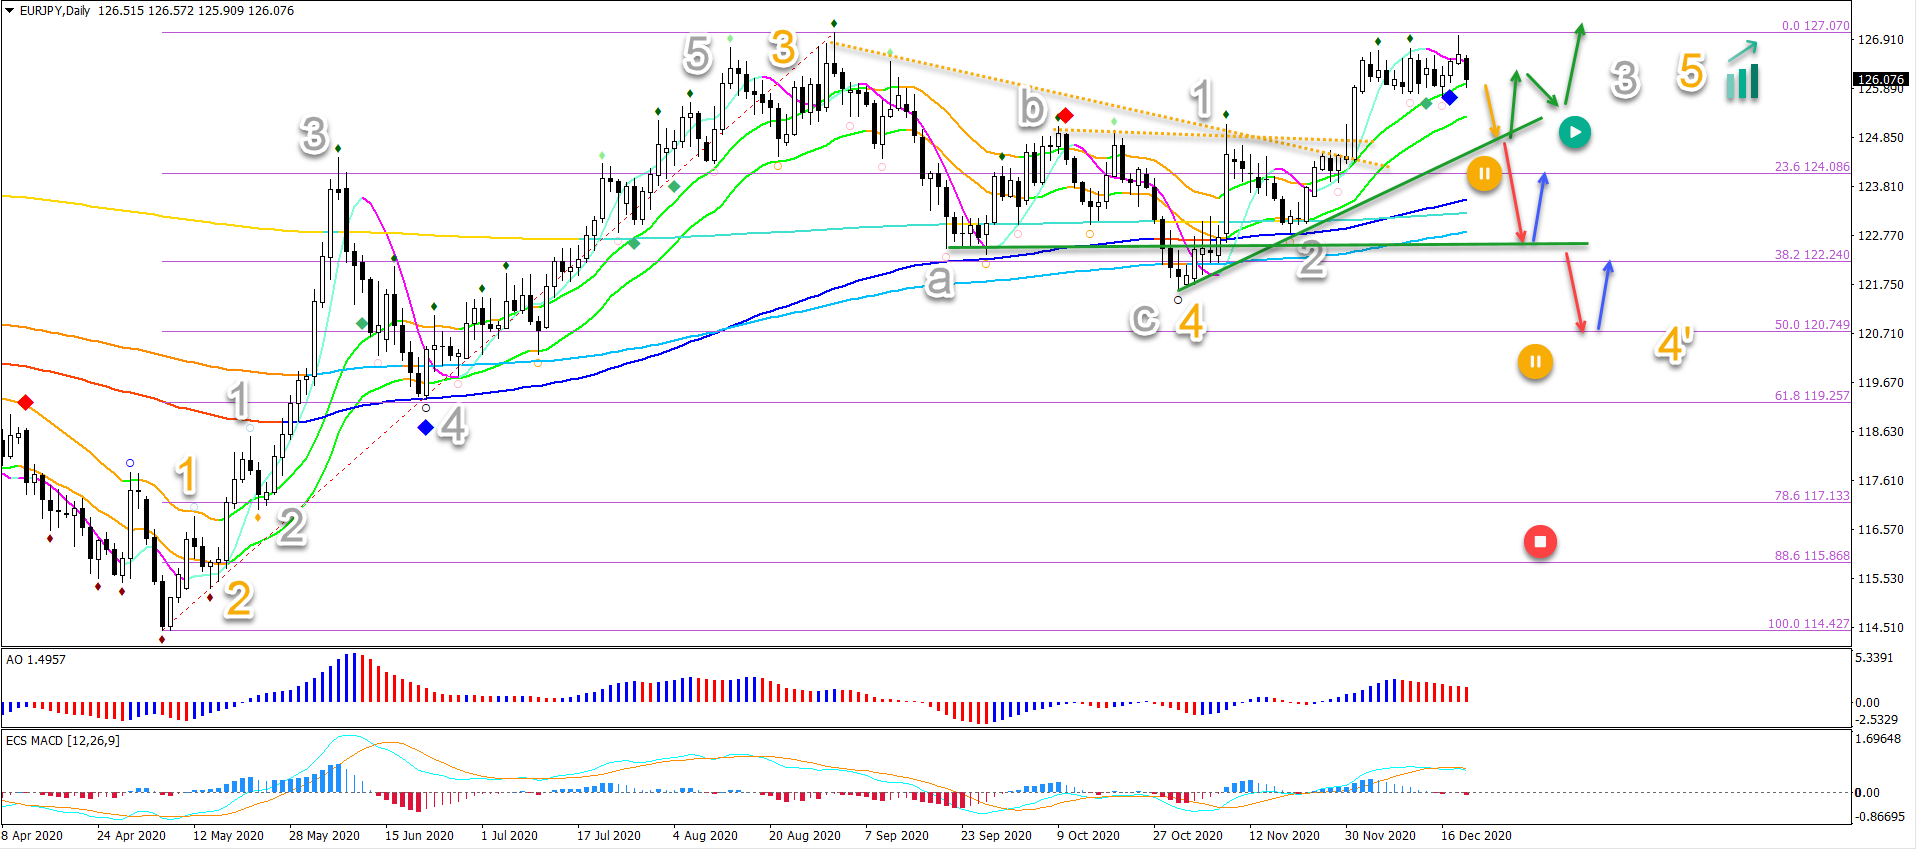 EUR/JPY 21.12.2020 daily chart